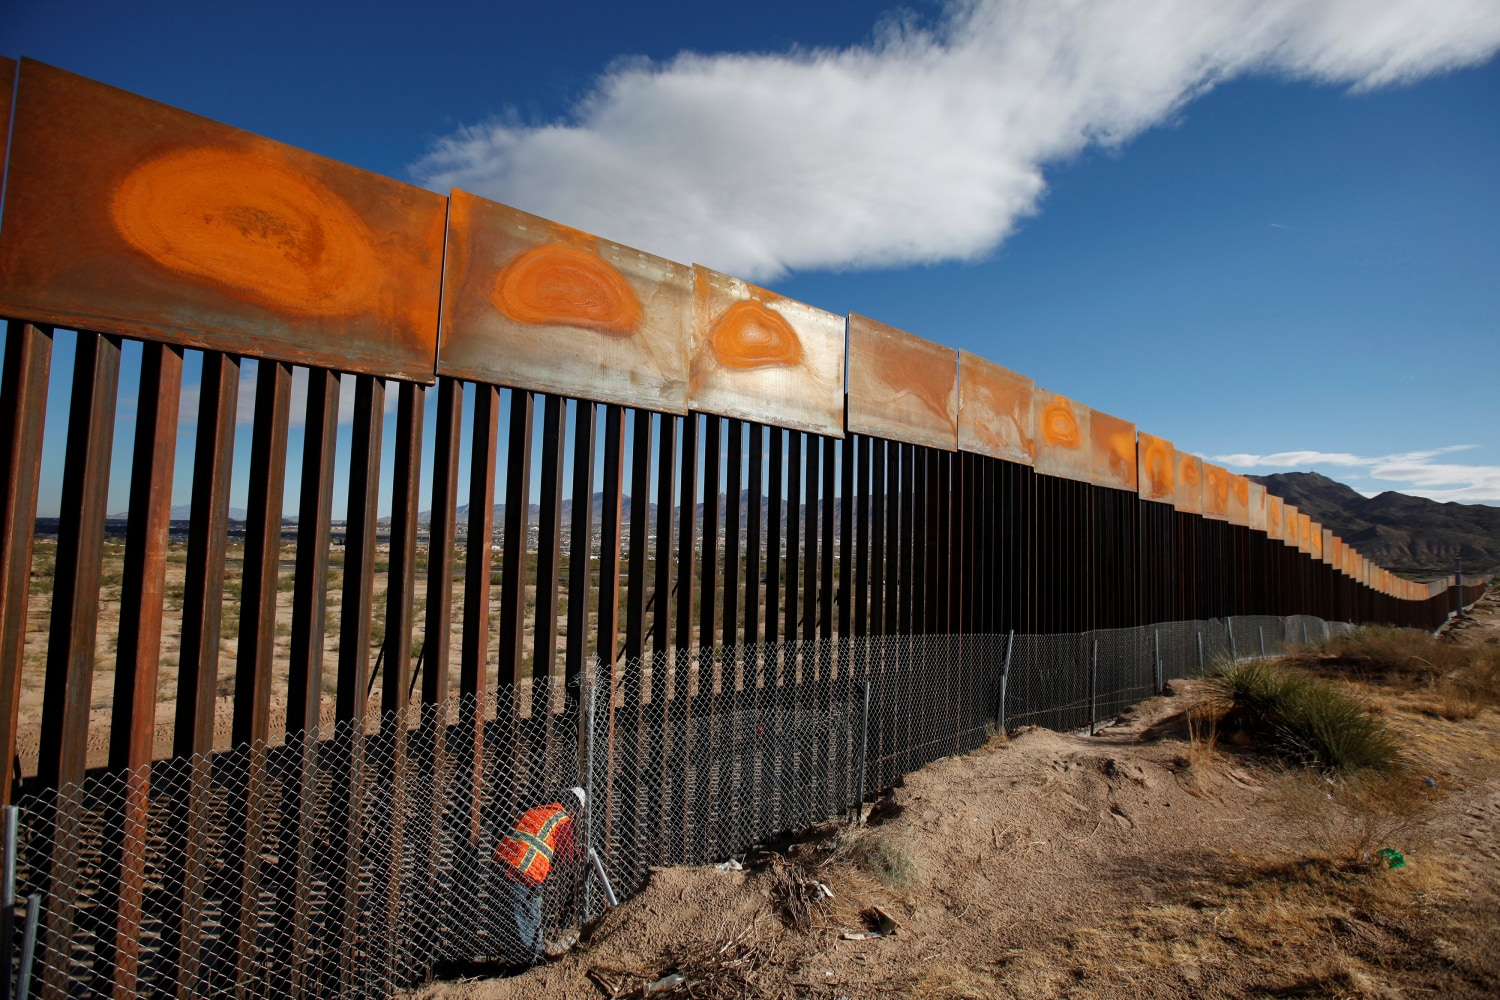 Border Wall Prototypes to Be Built by September